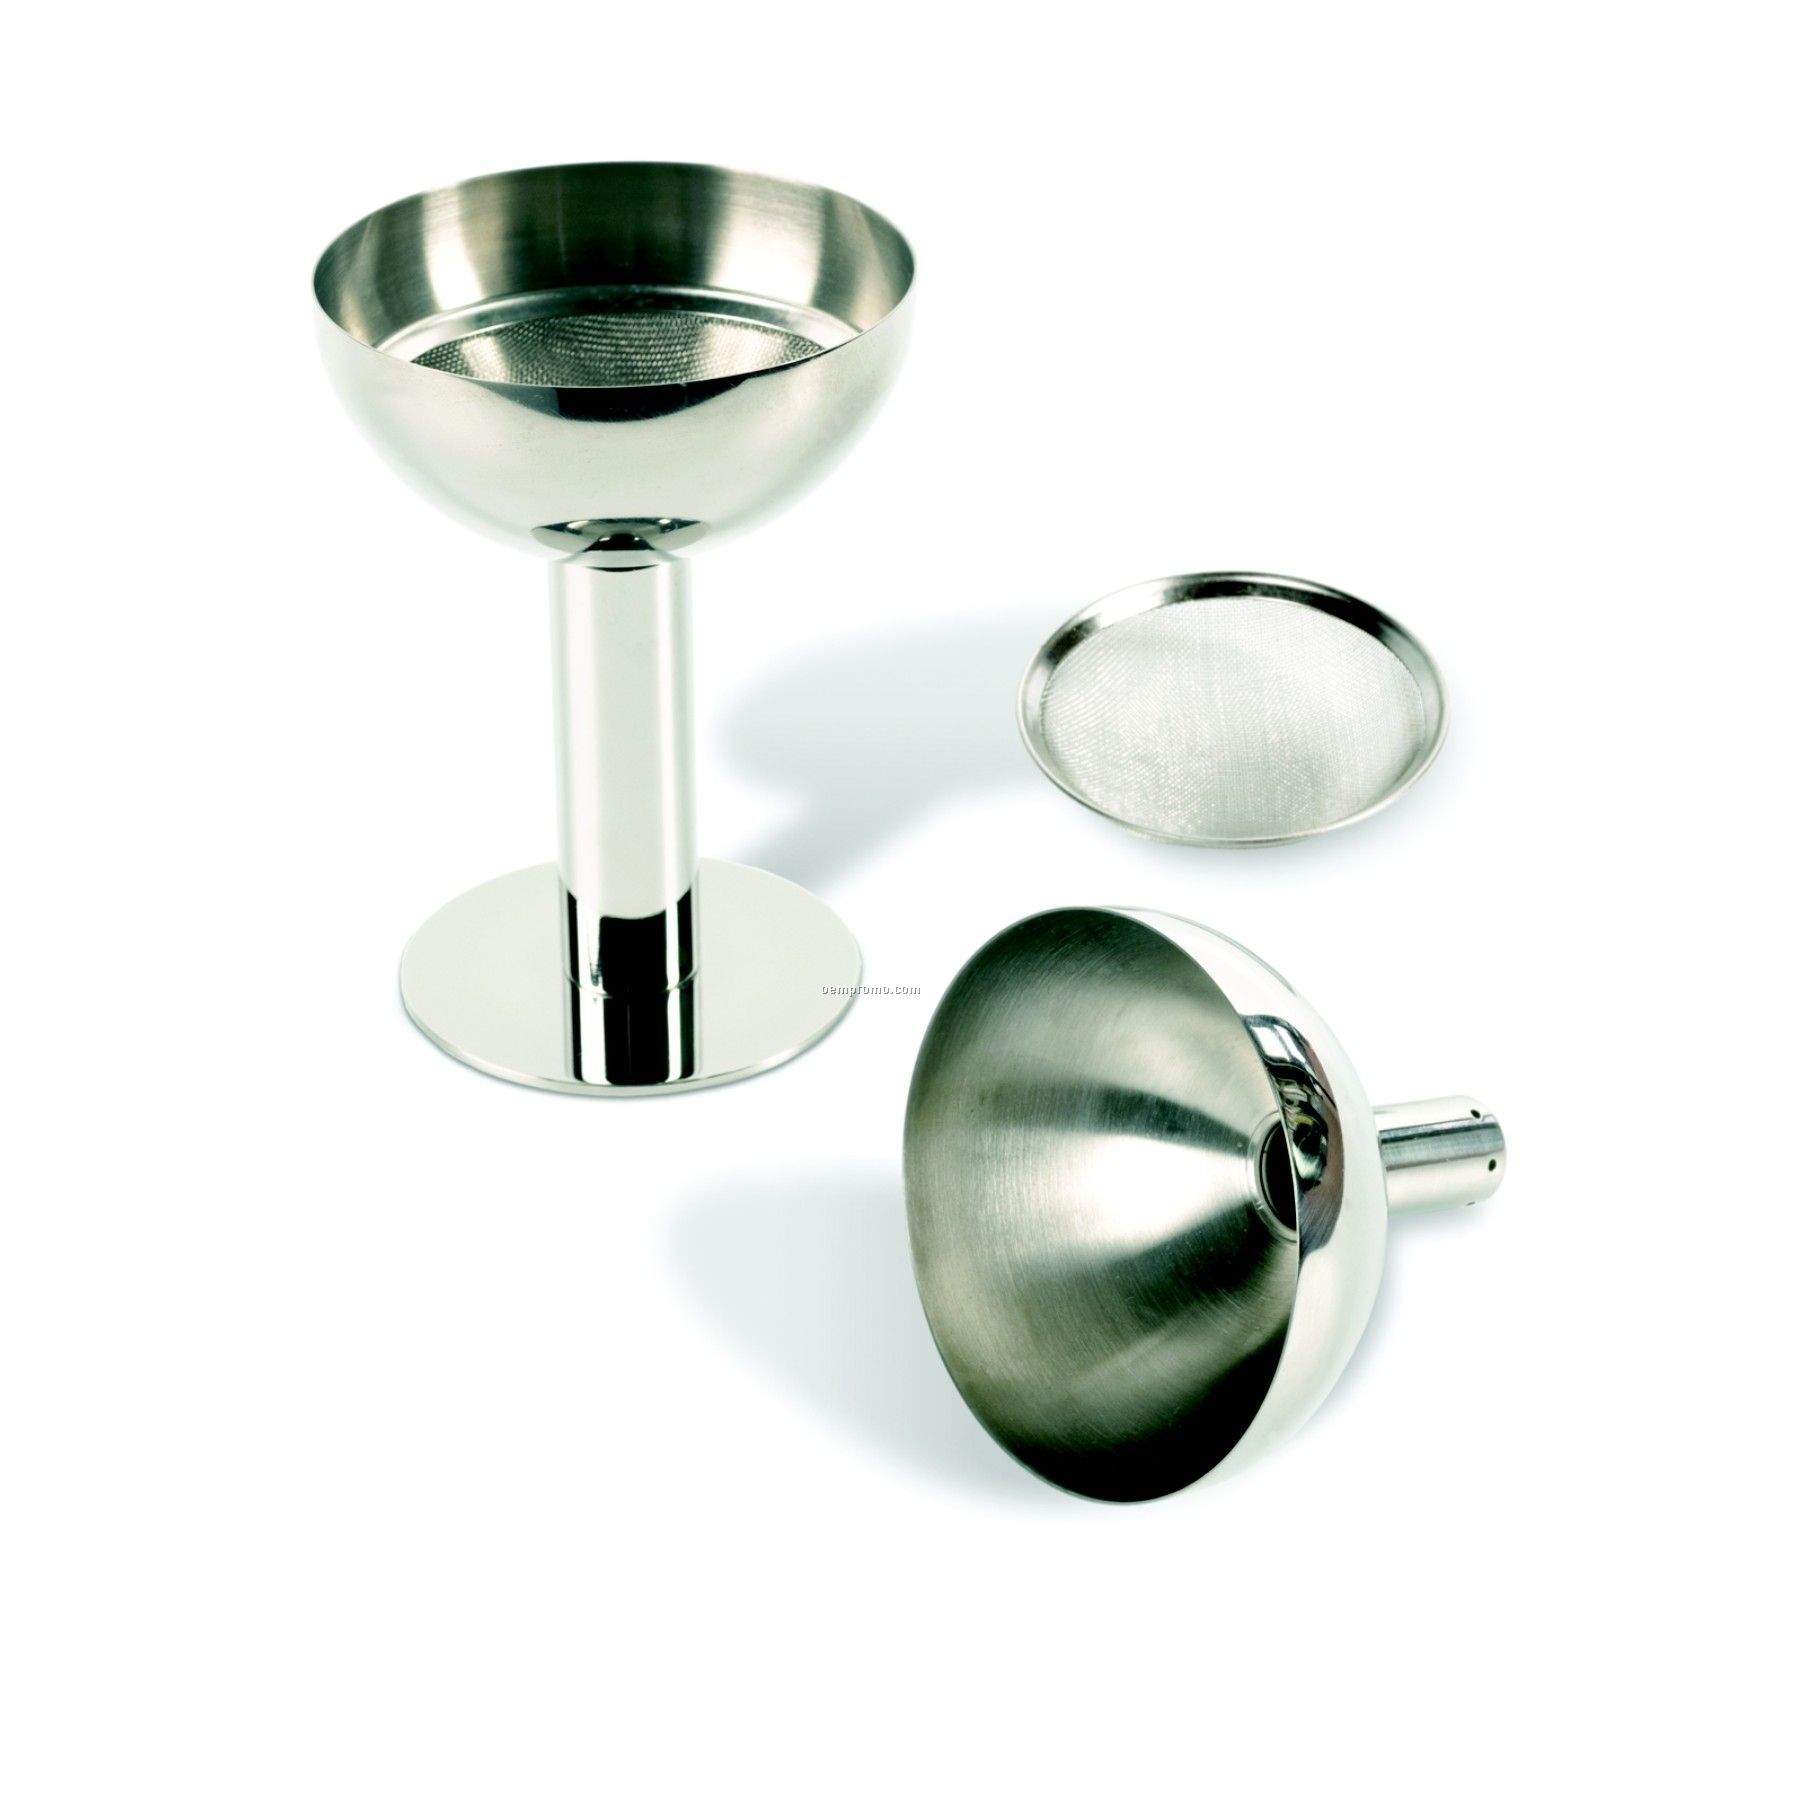 Stainless Steel Decanter Funnel Set